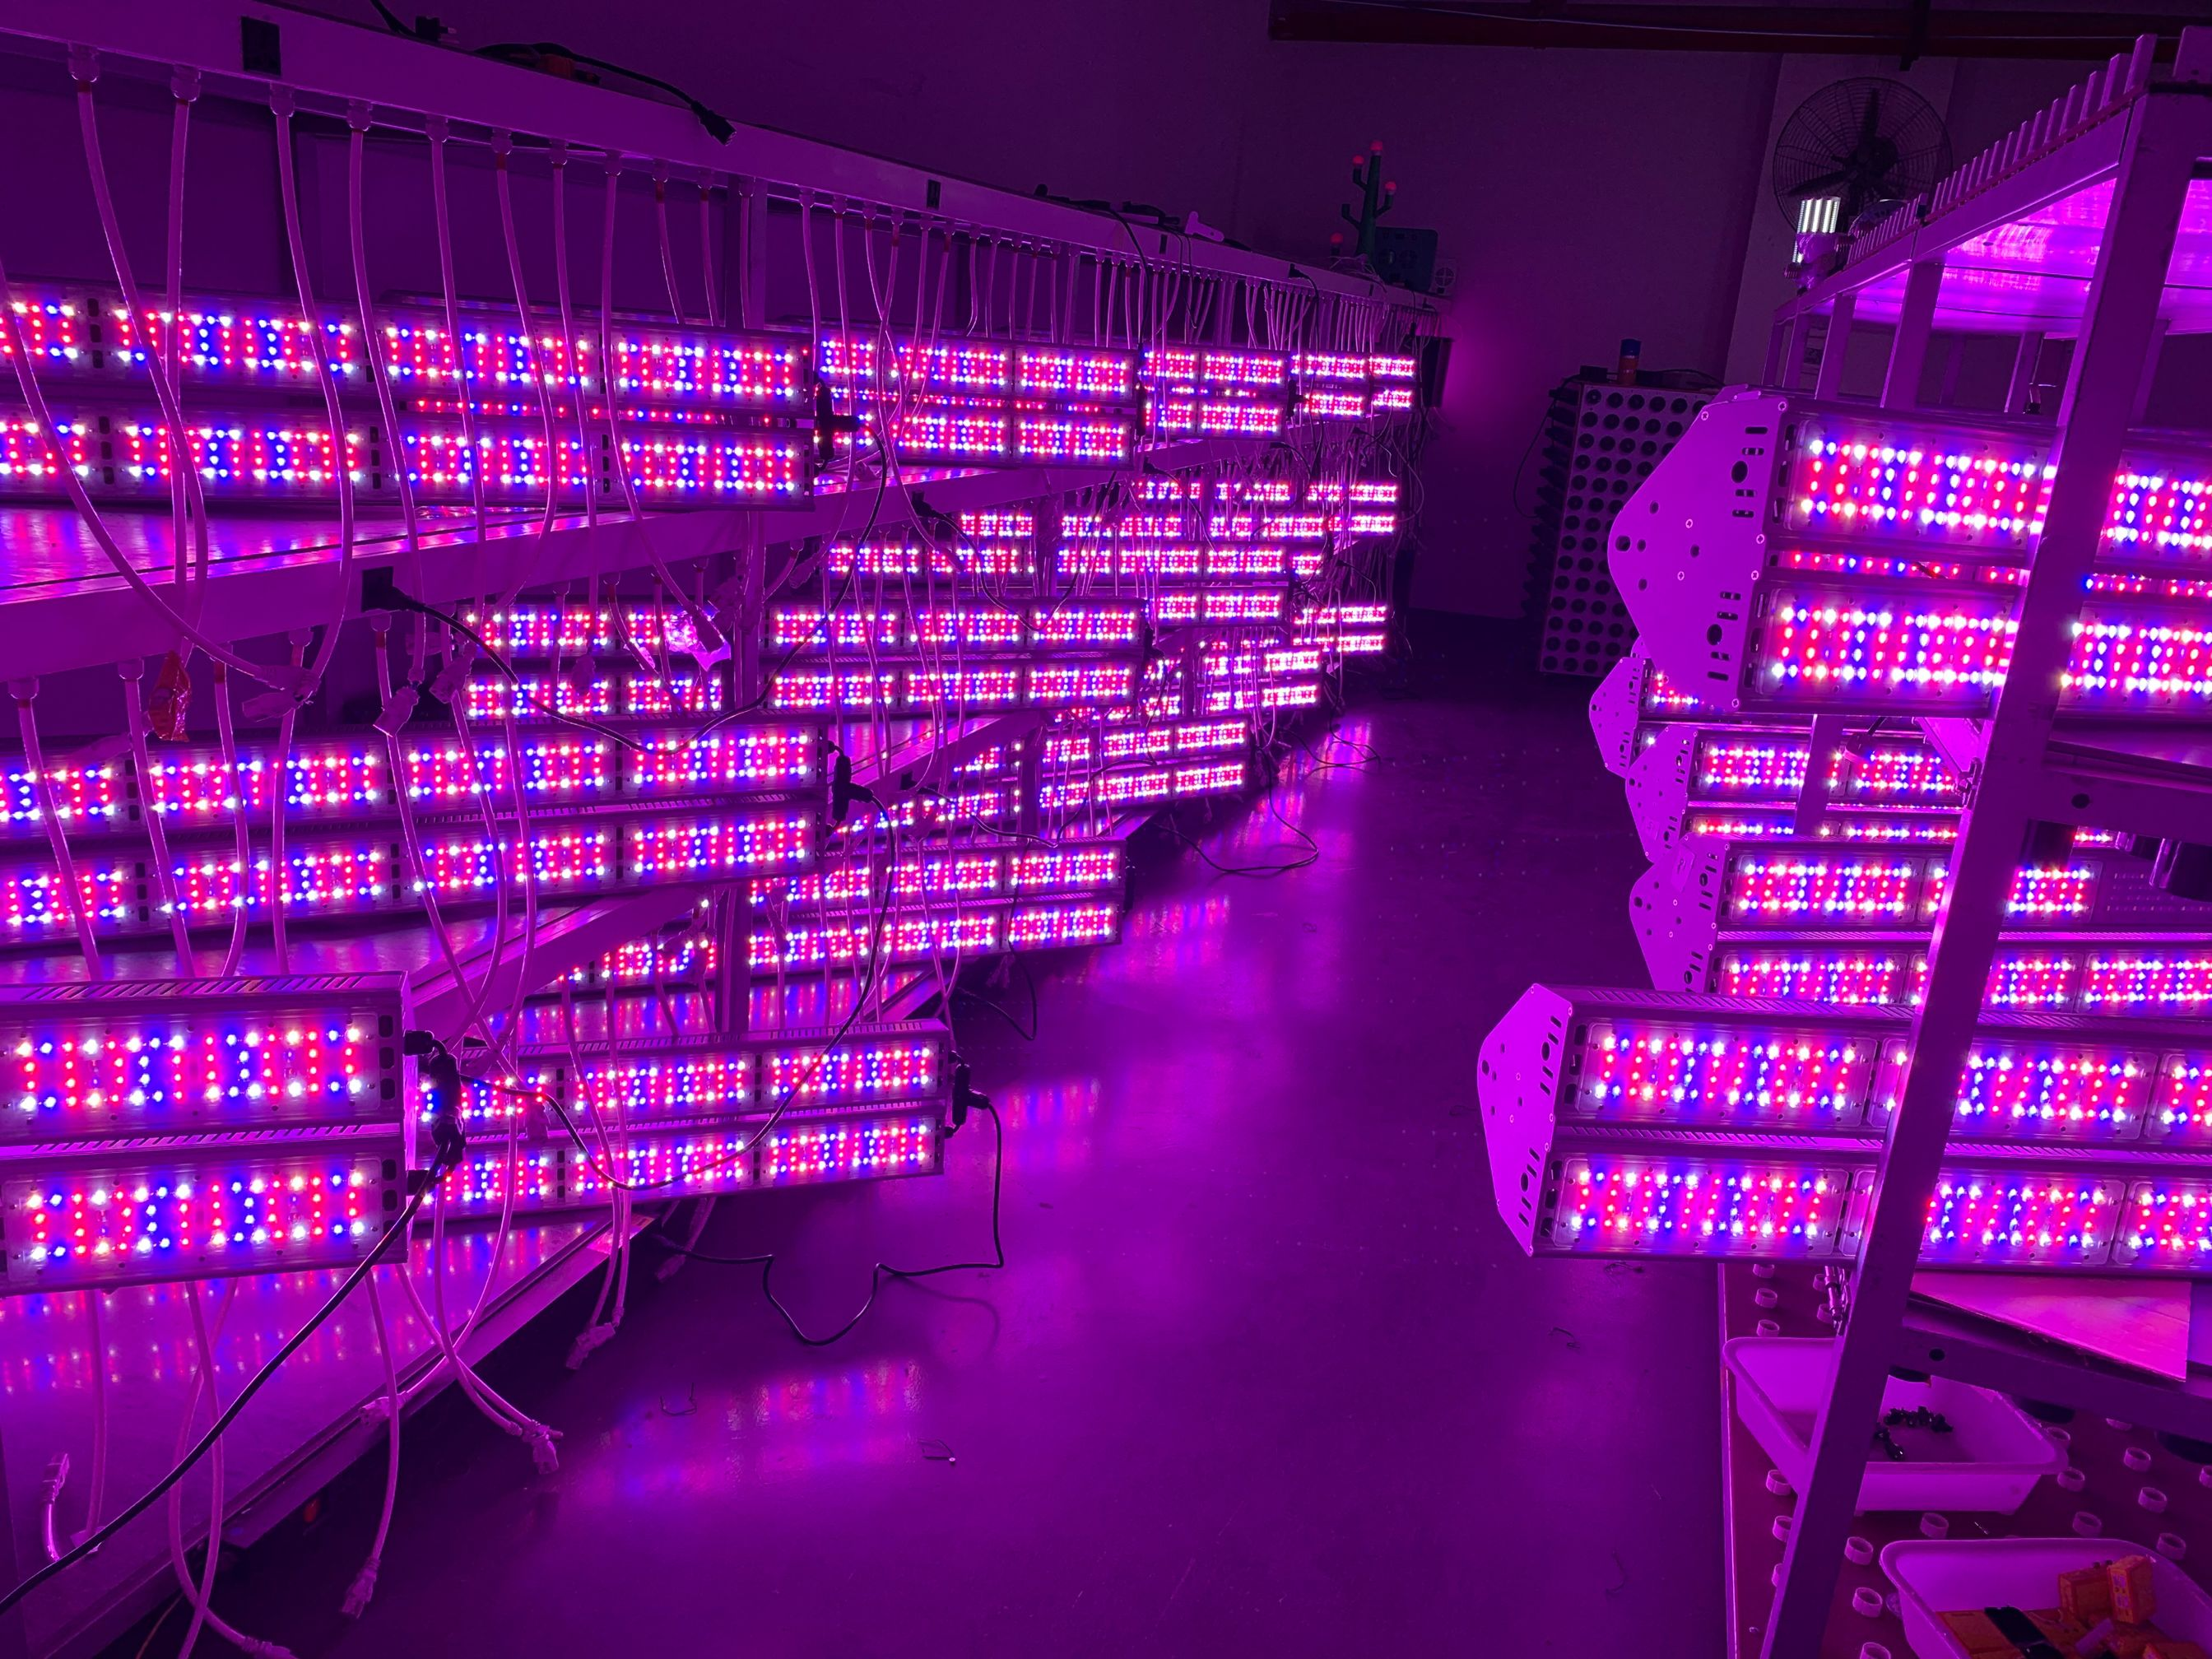 2000w led grow lights with full spectrum